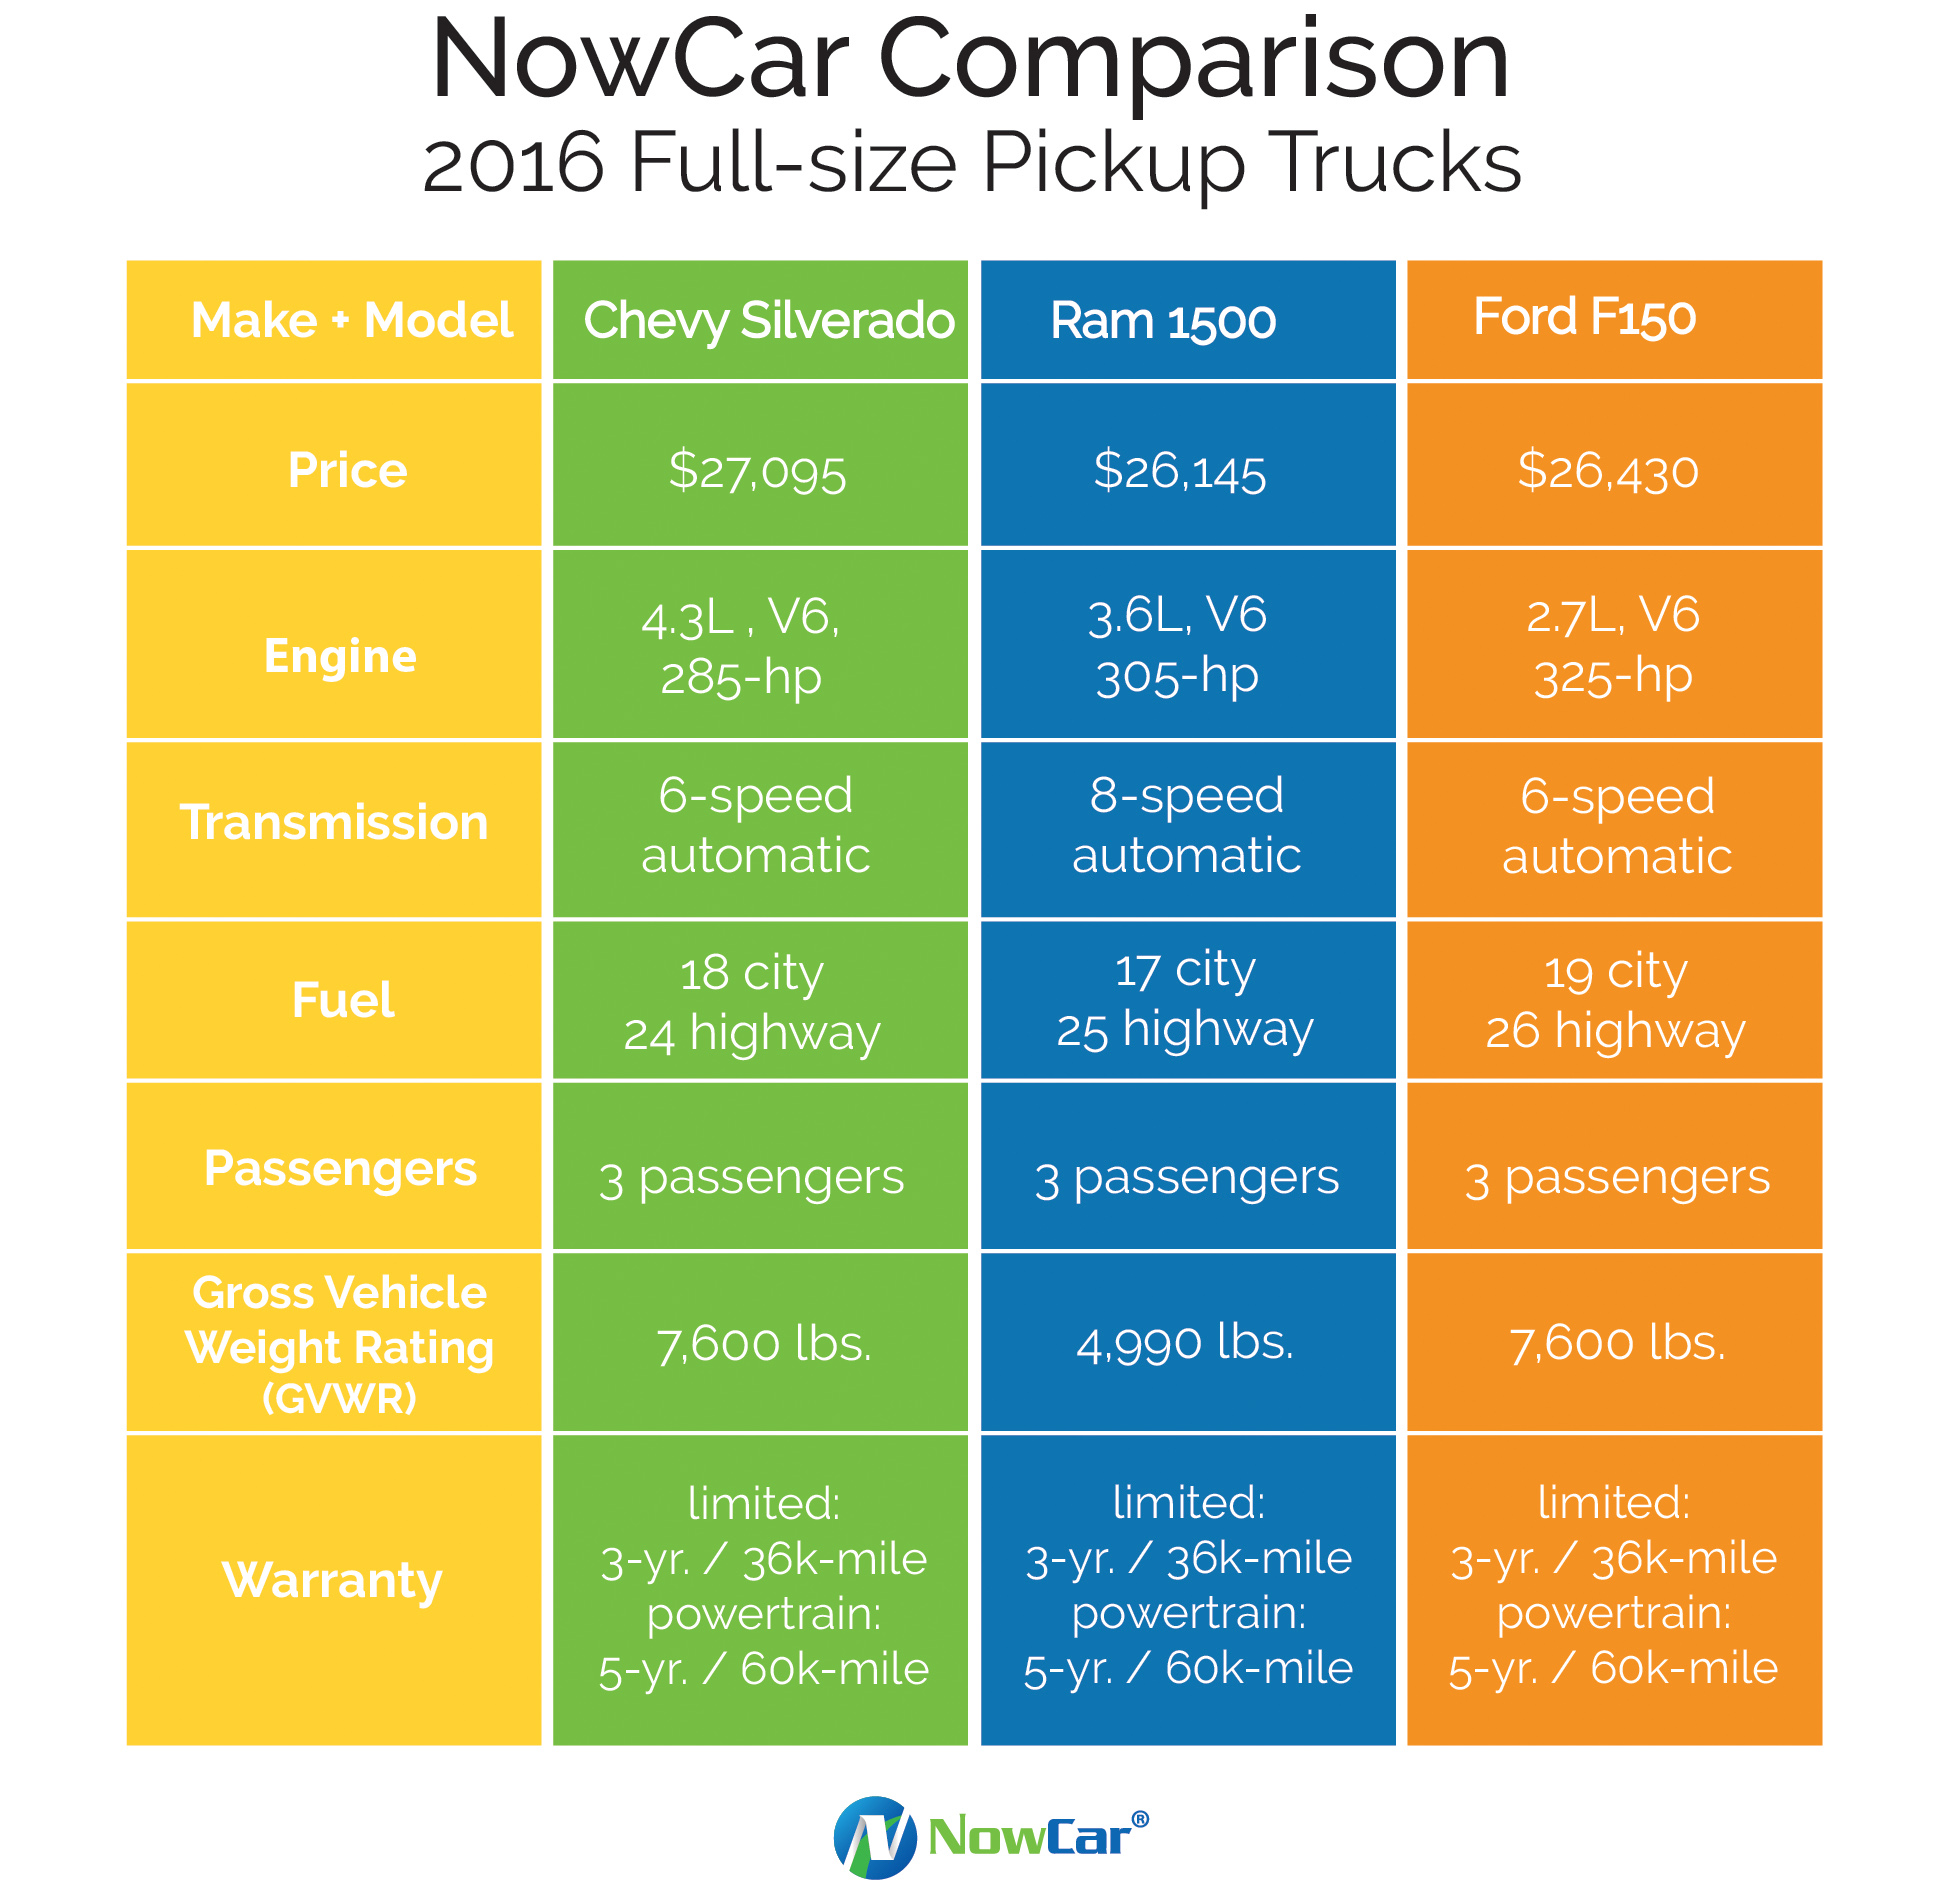 Truck comparison: Ford, Ram, Chevy